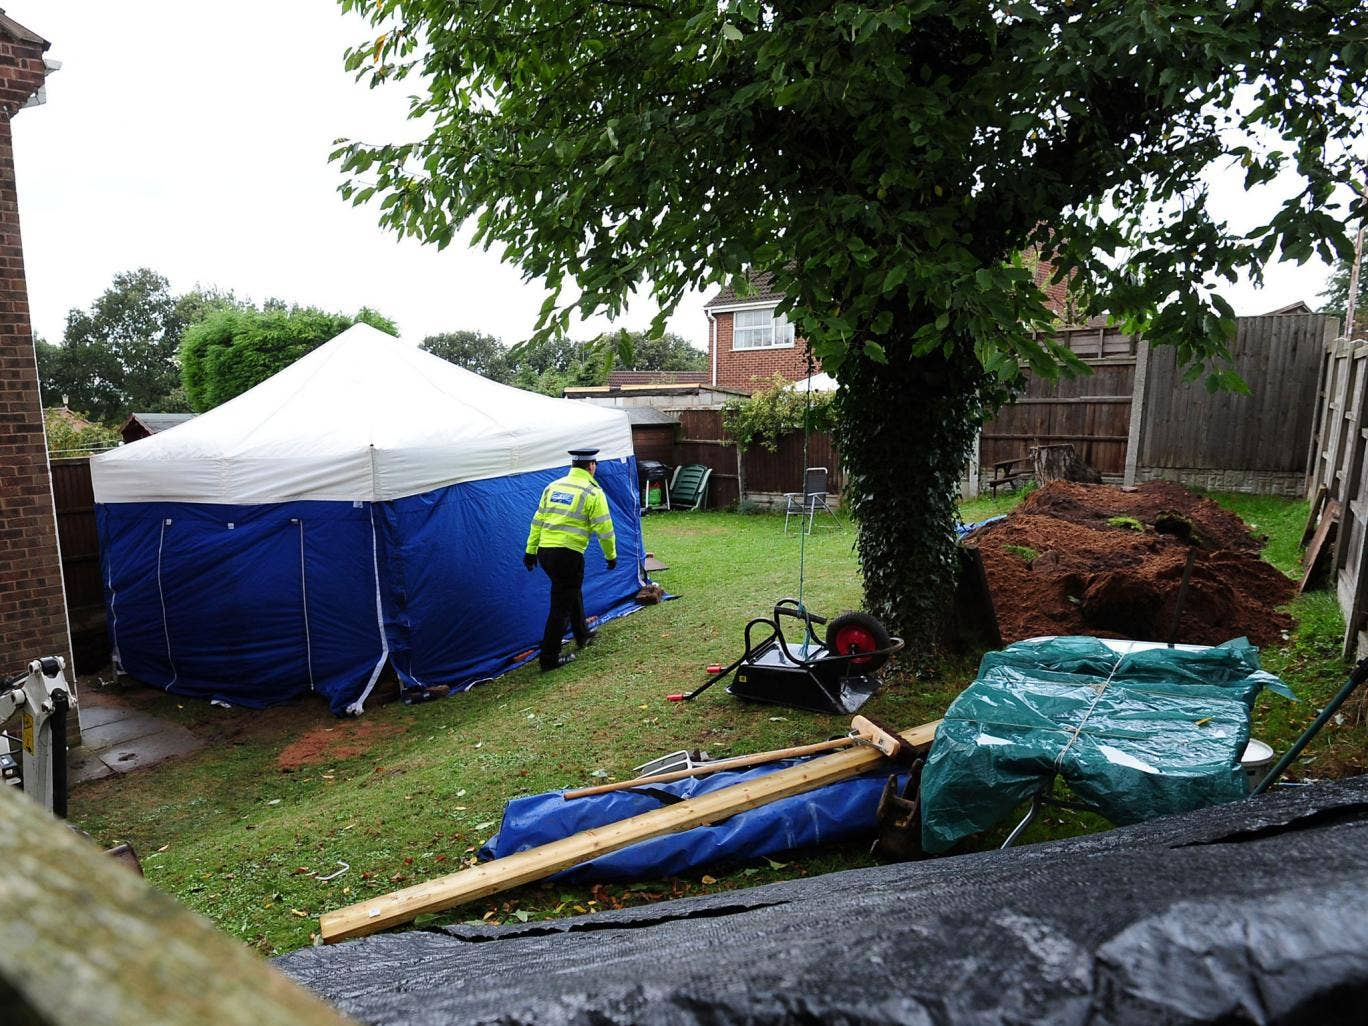 The remains of two people have been found in the garden of a house in Blenheim Close, Forest Town, near Mansfield